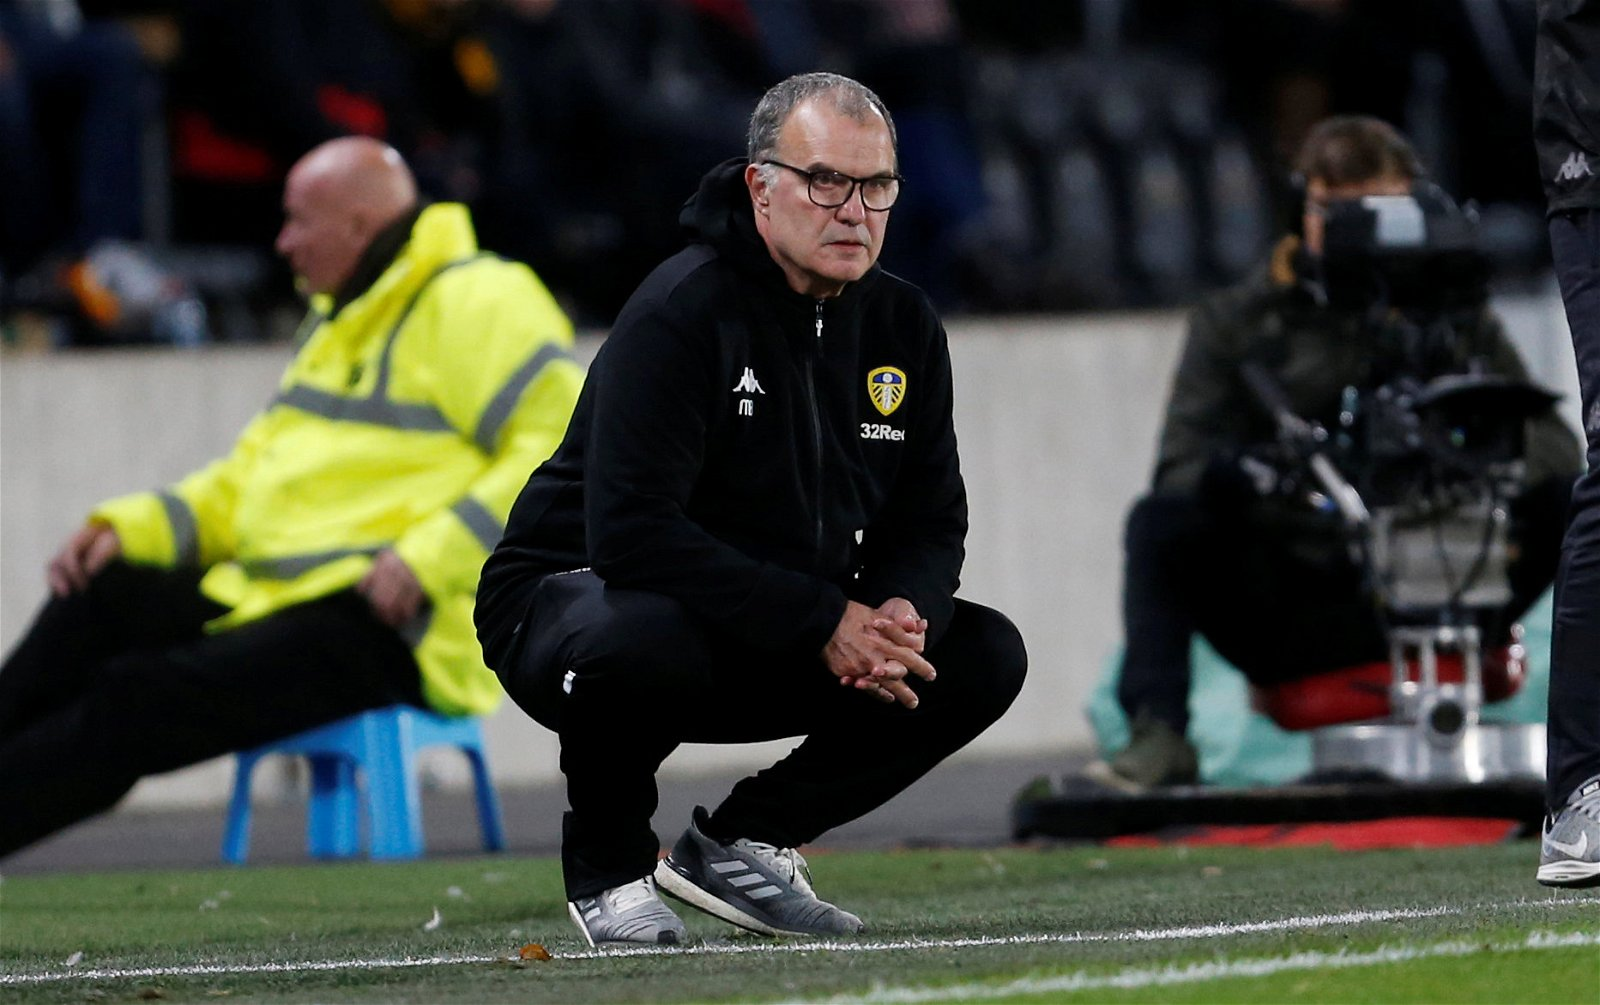 Leeds United manager Marcelo Bielsa crouches down during win against Hull